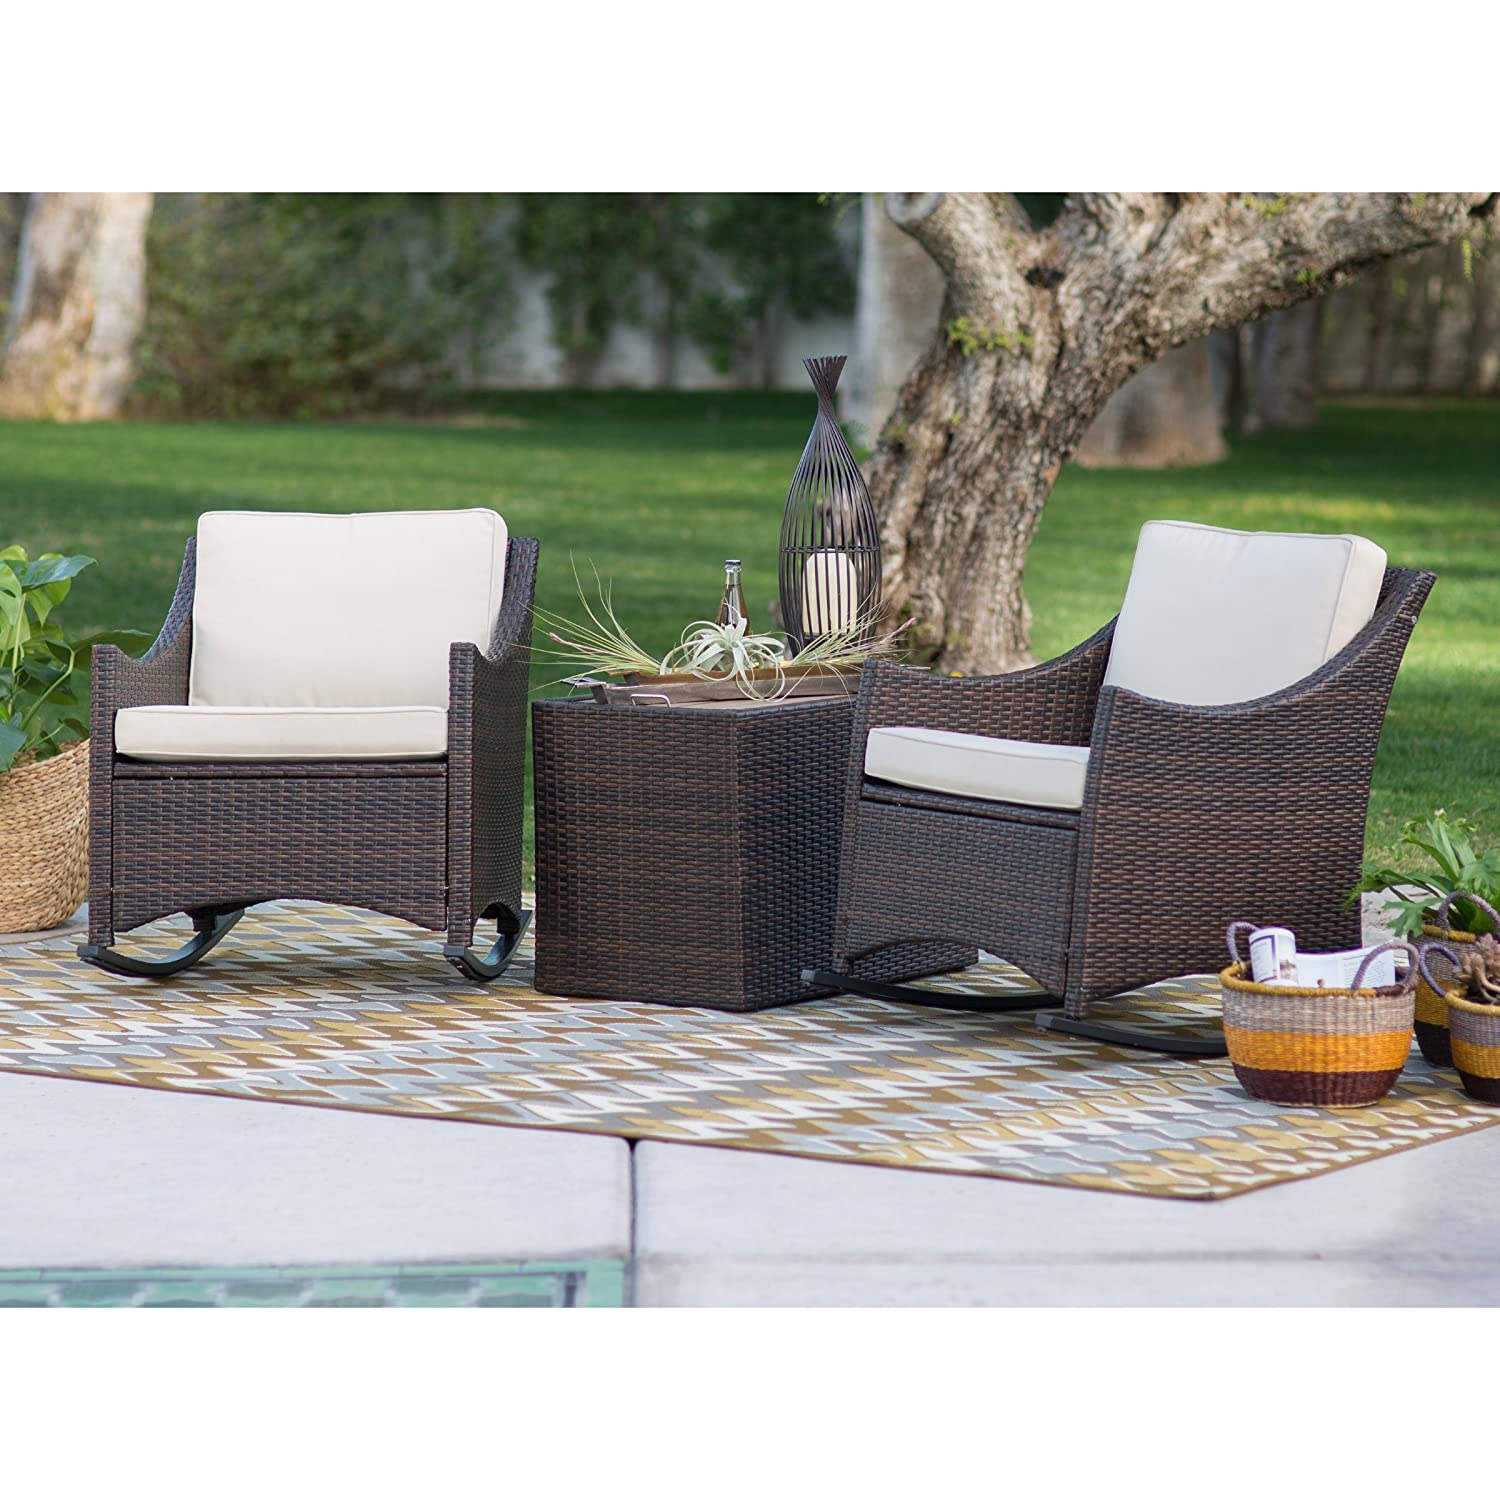 Patio Furniture Sets,Traditional Harrison, Patio Set 3 Piece, Club Style  Durable Resin Wicker Outdoor Patio Rocking Chairs With Side Storage Table  Comes In ... - Amazon.com : Patio Furniture Sets, Traditional Harrison, Patio Set 3